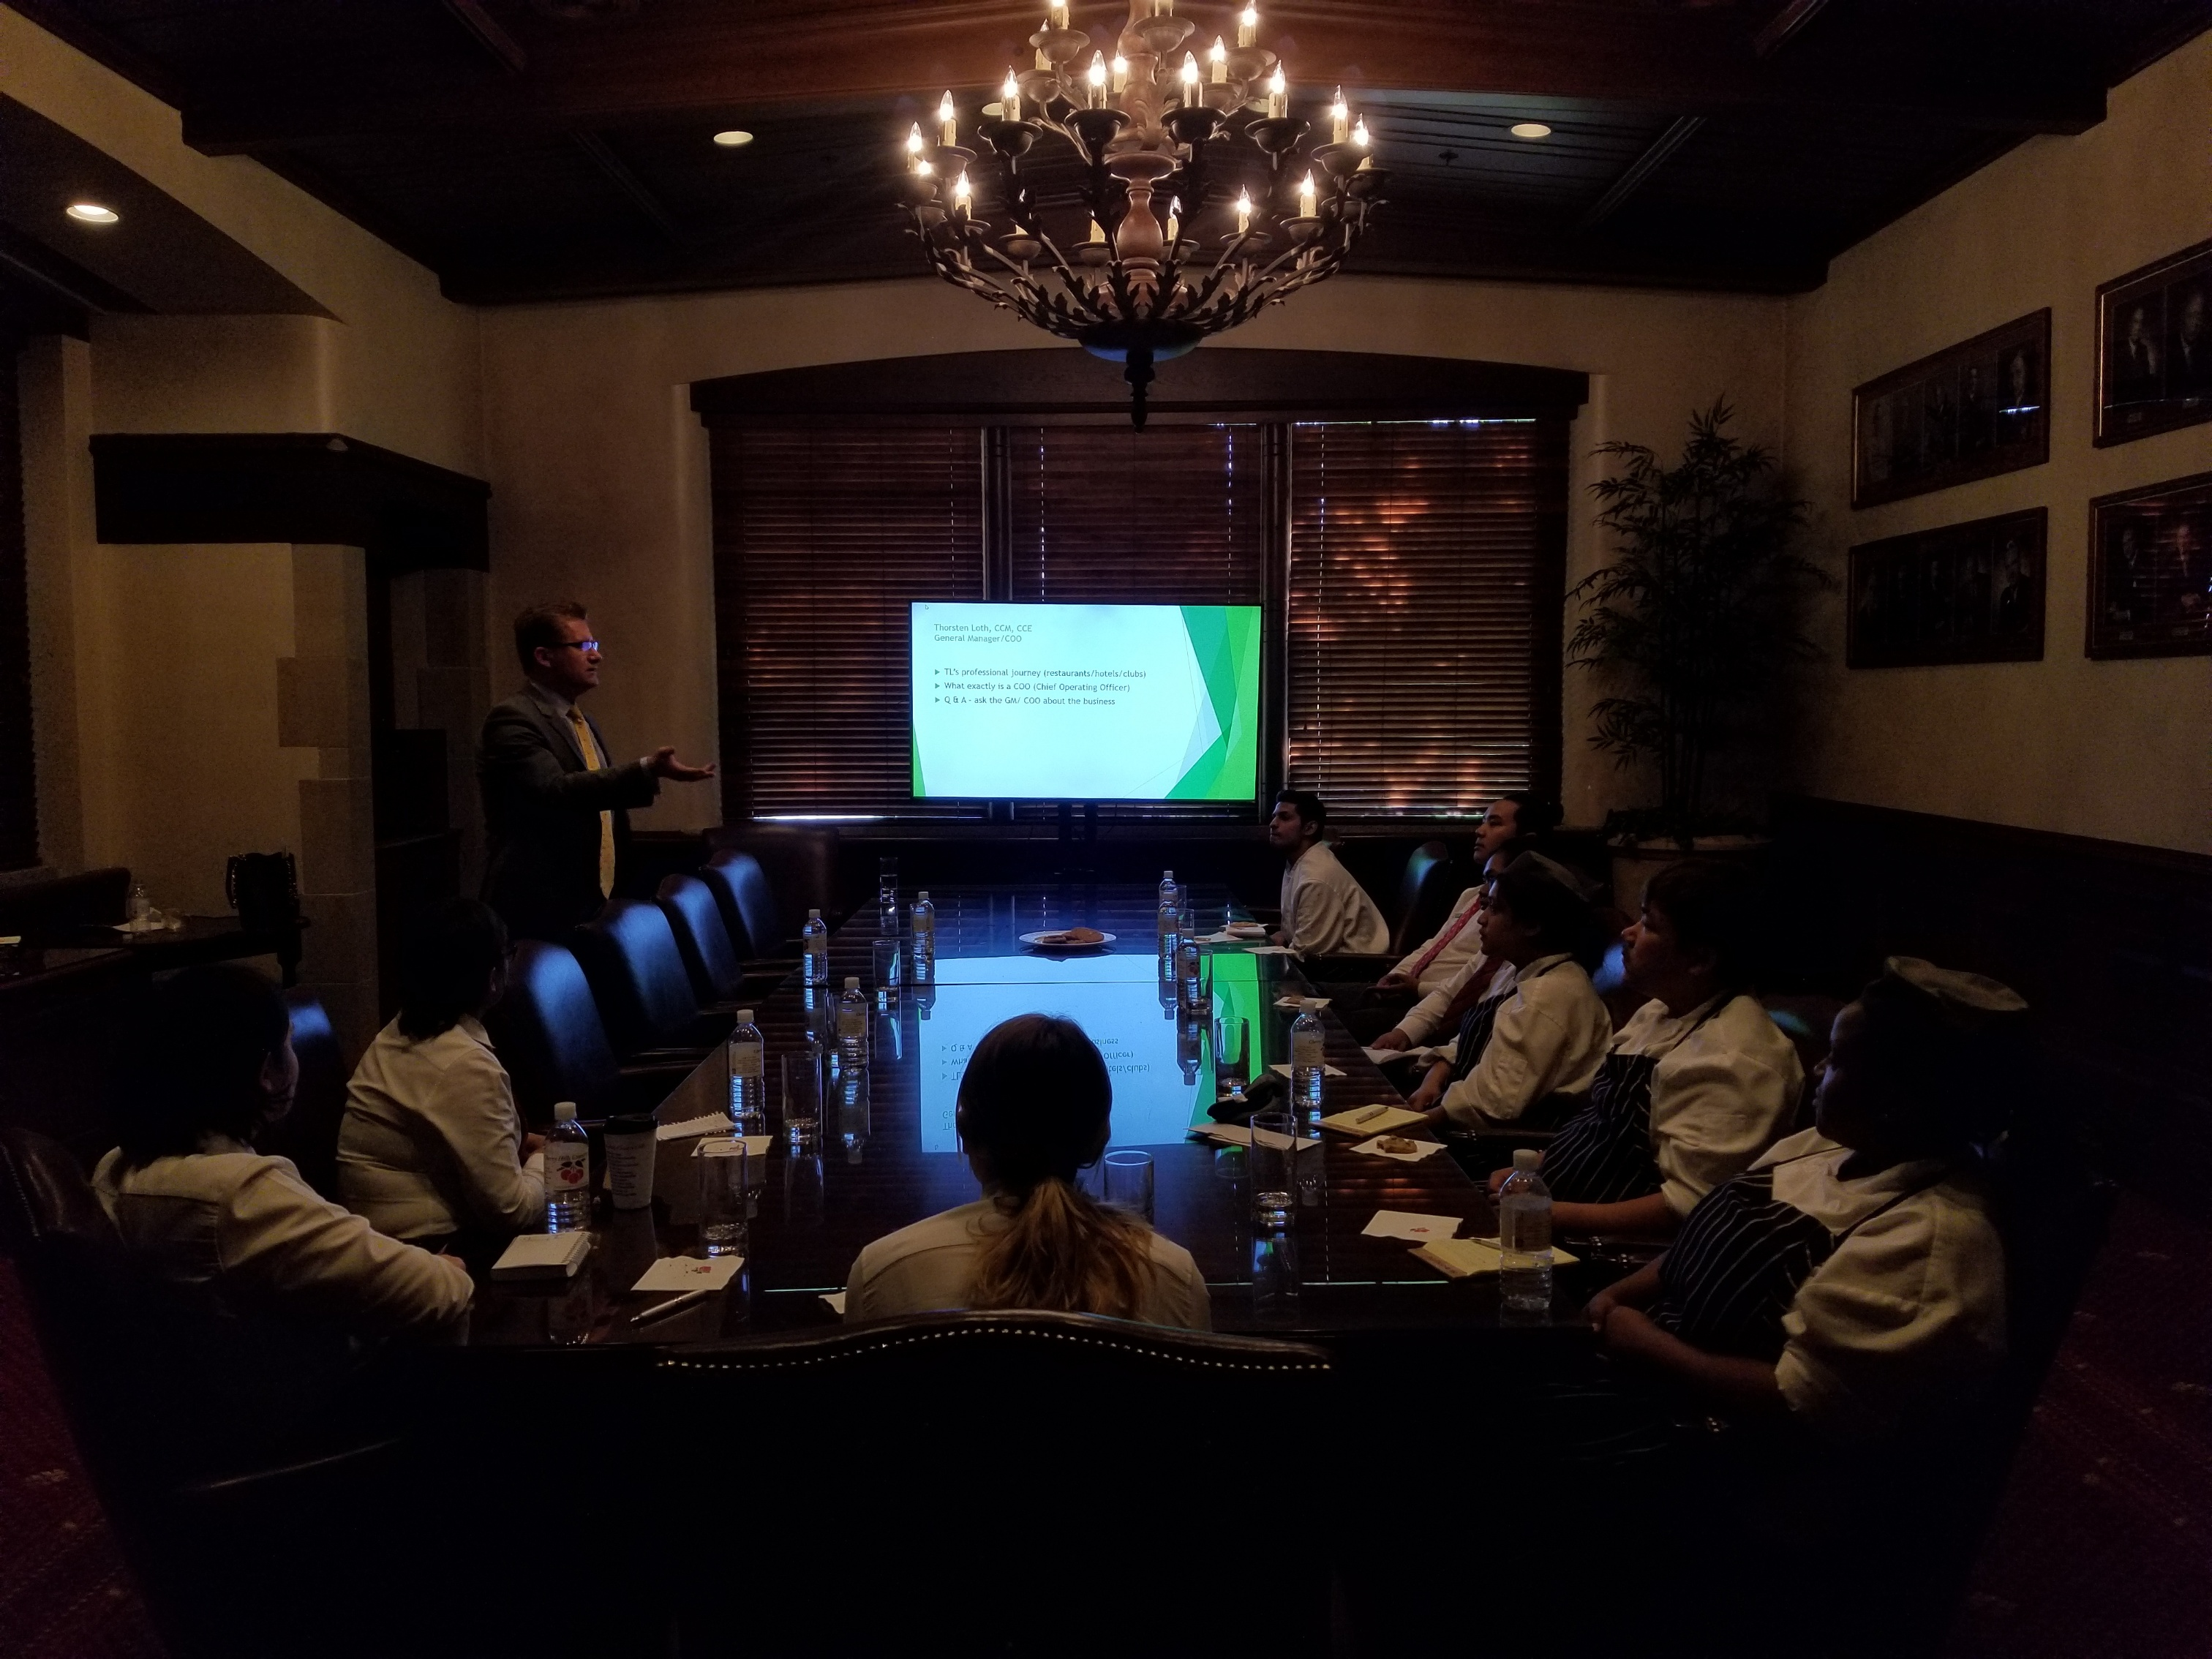 Hospitality professionals attending a lecture.